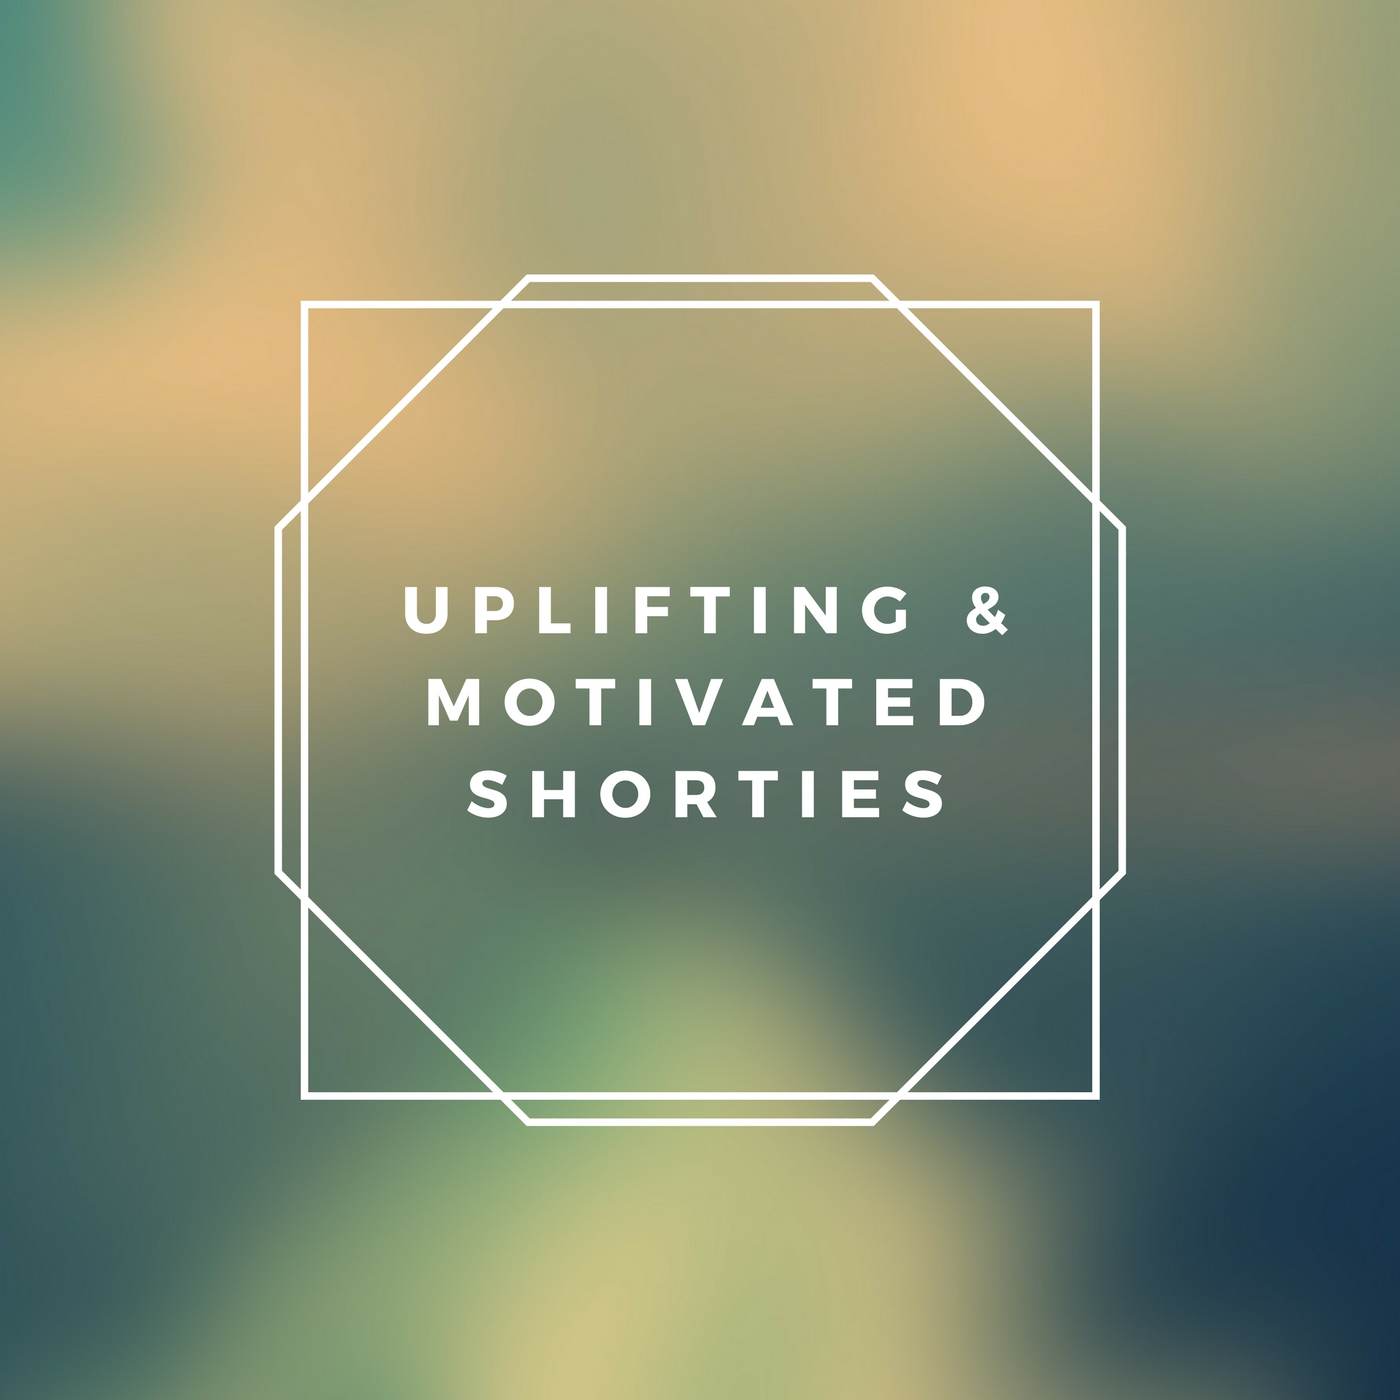 Uplifting & Motivated Shorties.jpg